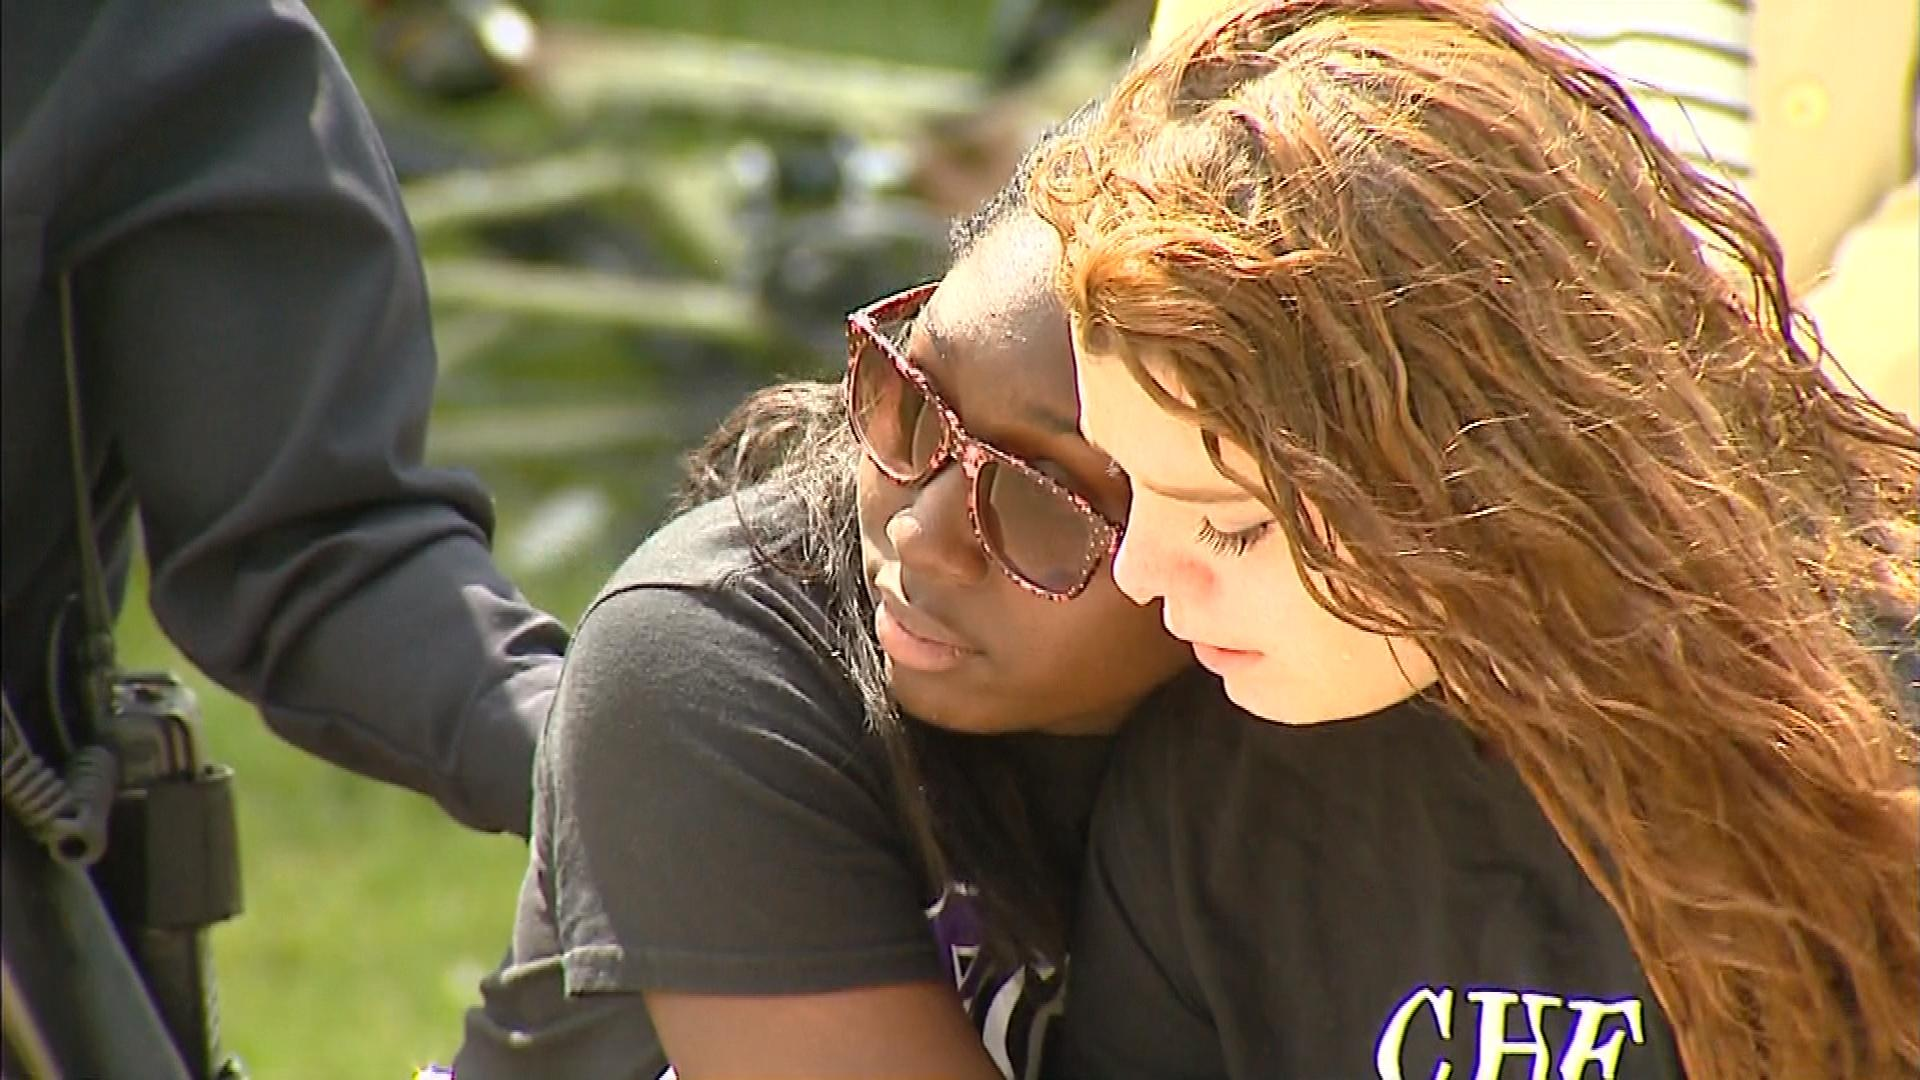 An image from the memorial dedication (credit: CBS)